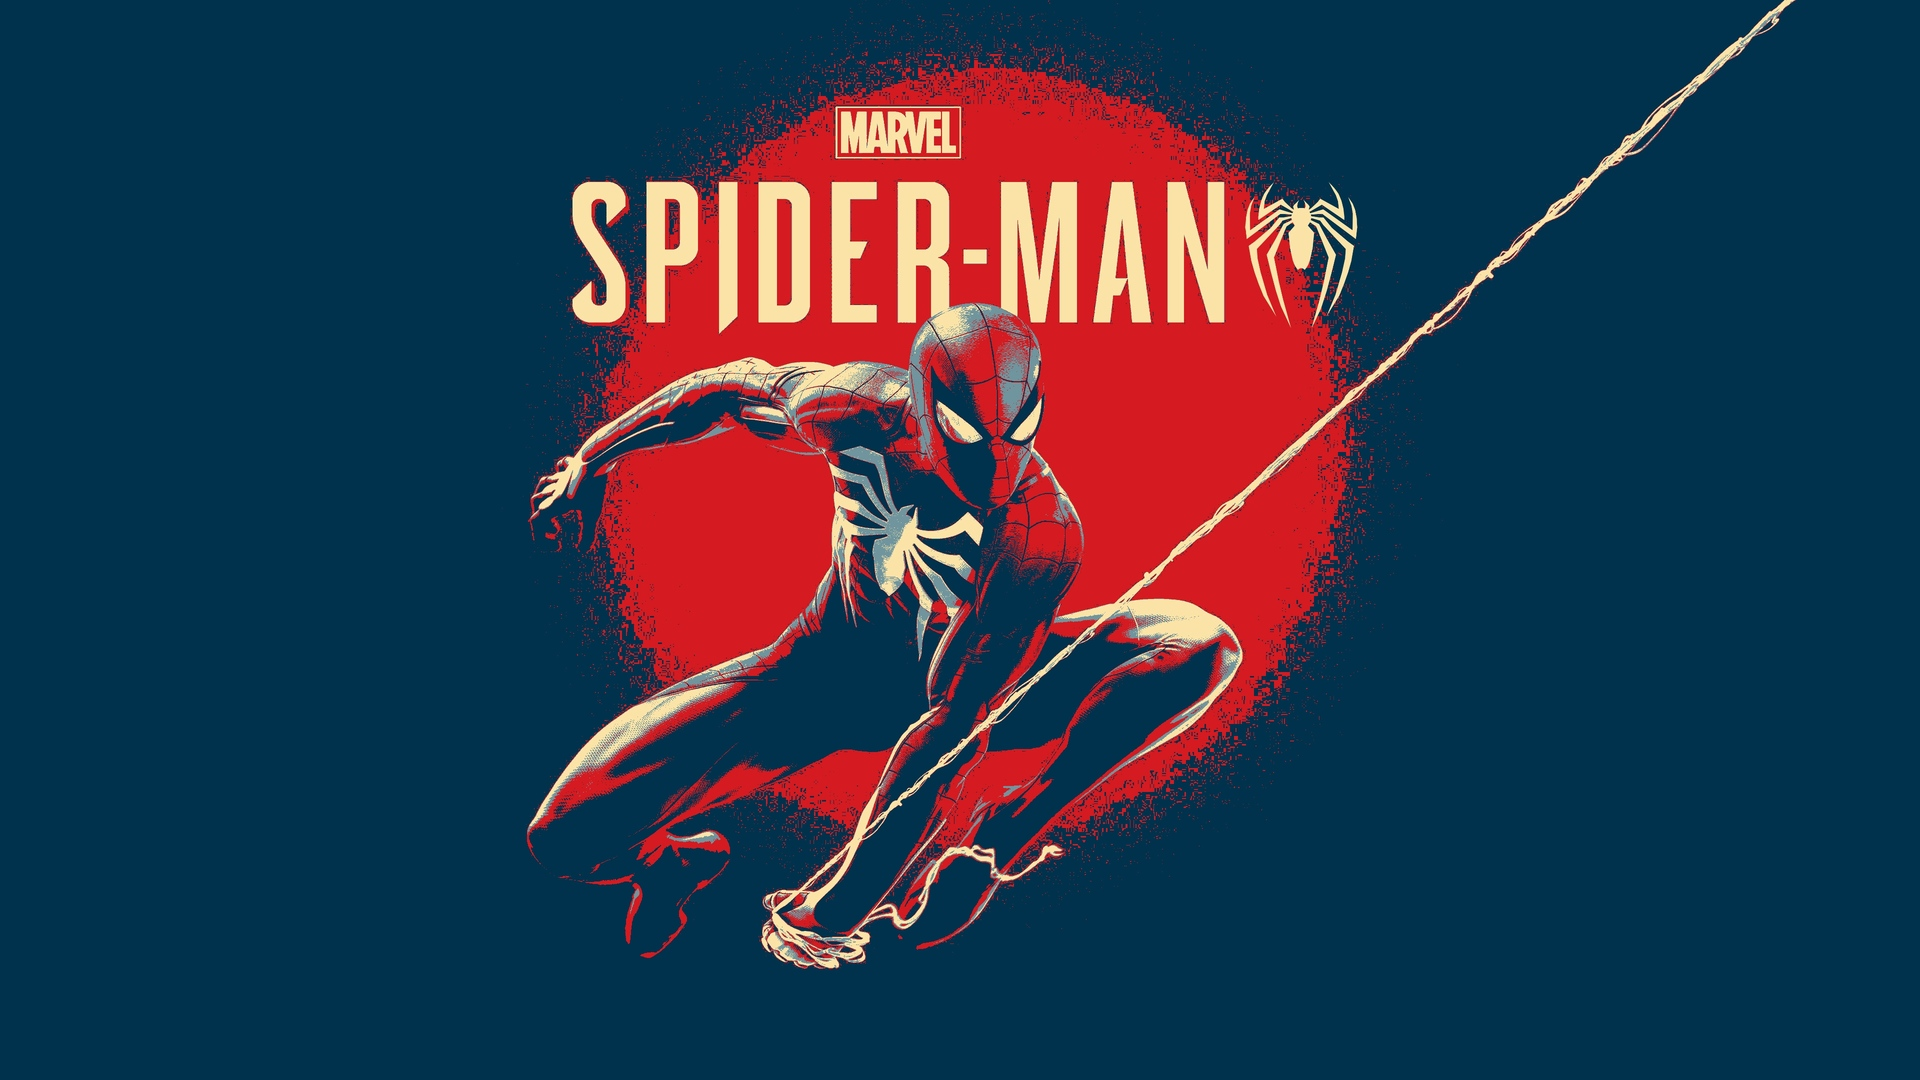 Cool Cars Wallpaper With Girls Marvel S Spider Man Wallpaper Ps4wallpapers Com